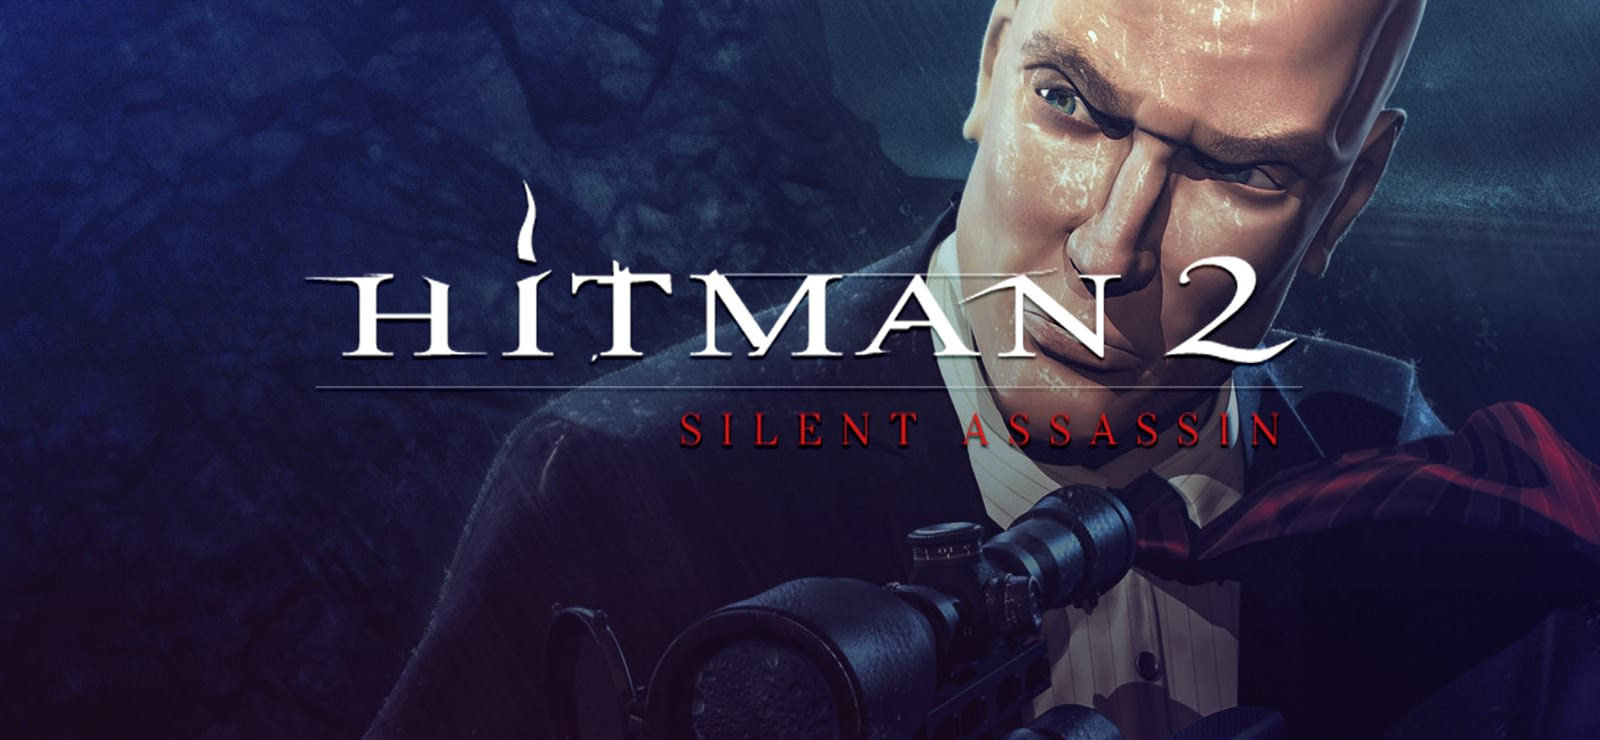 Hitman 2: Silent Assassin varies-with-device